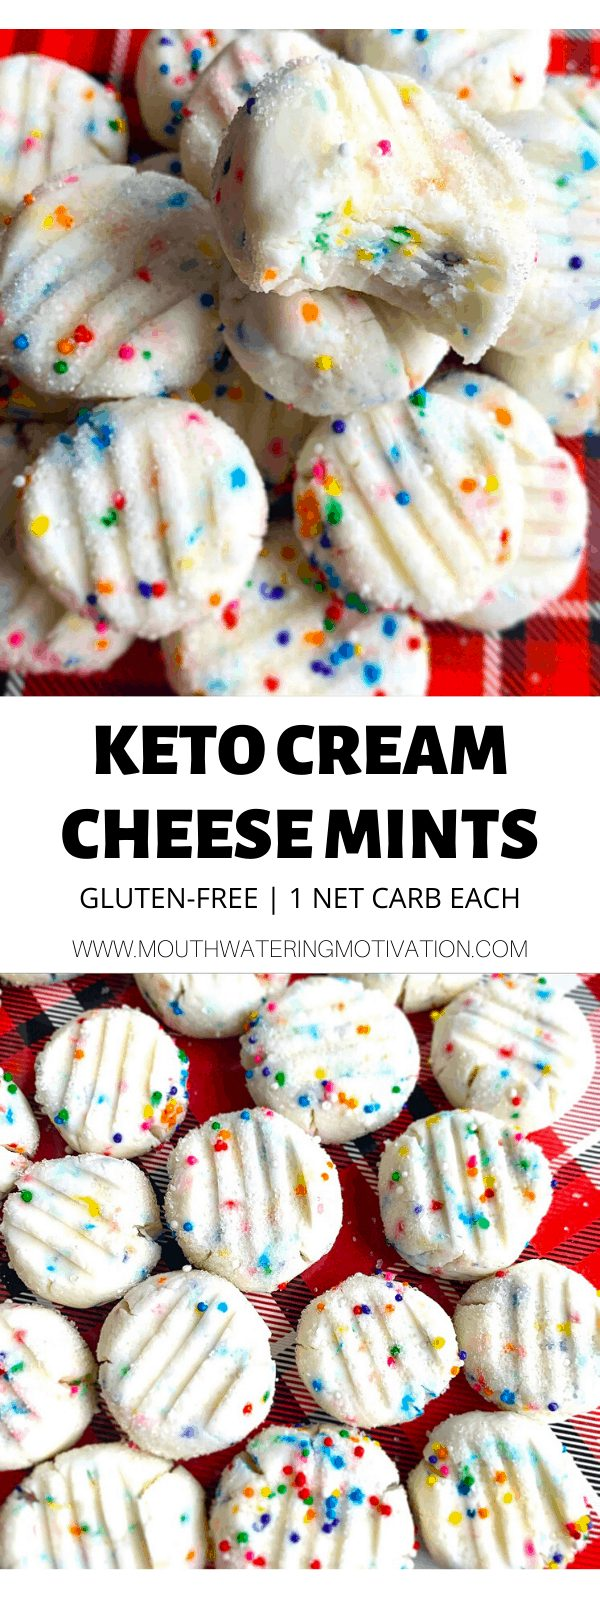 keto cream cheese mints